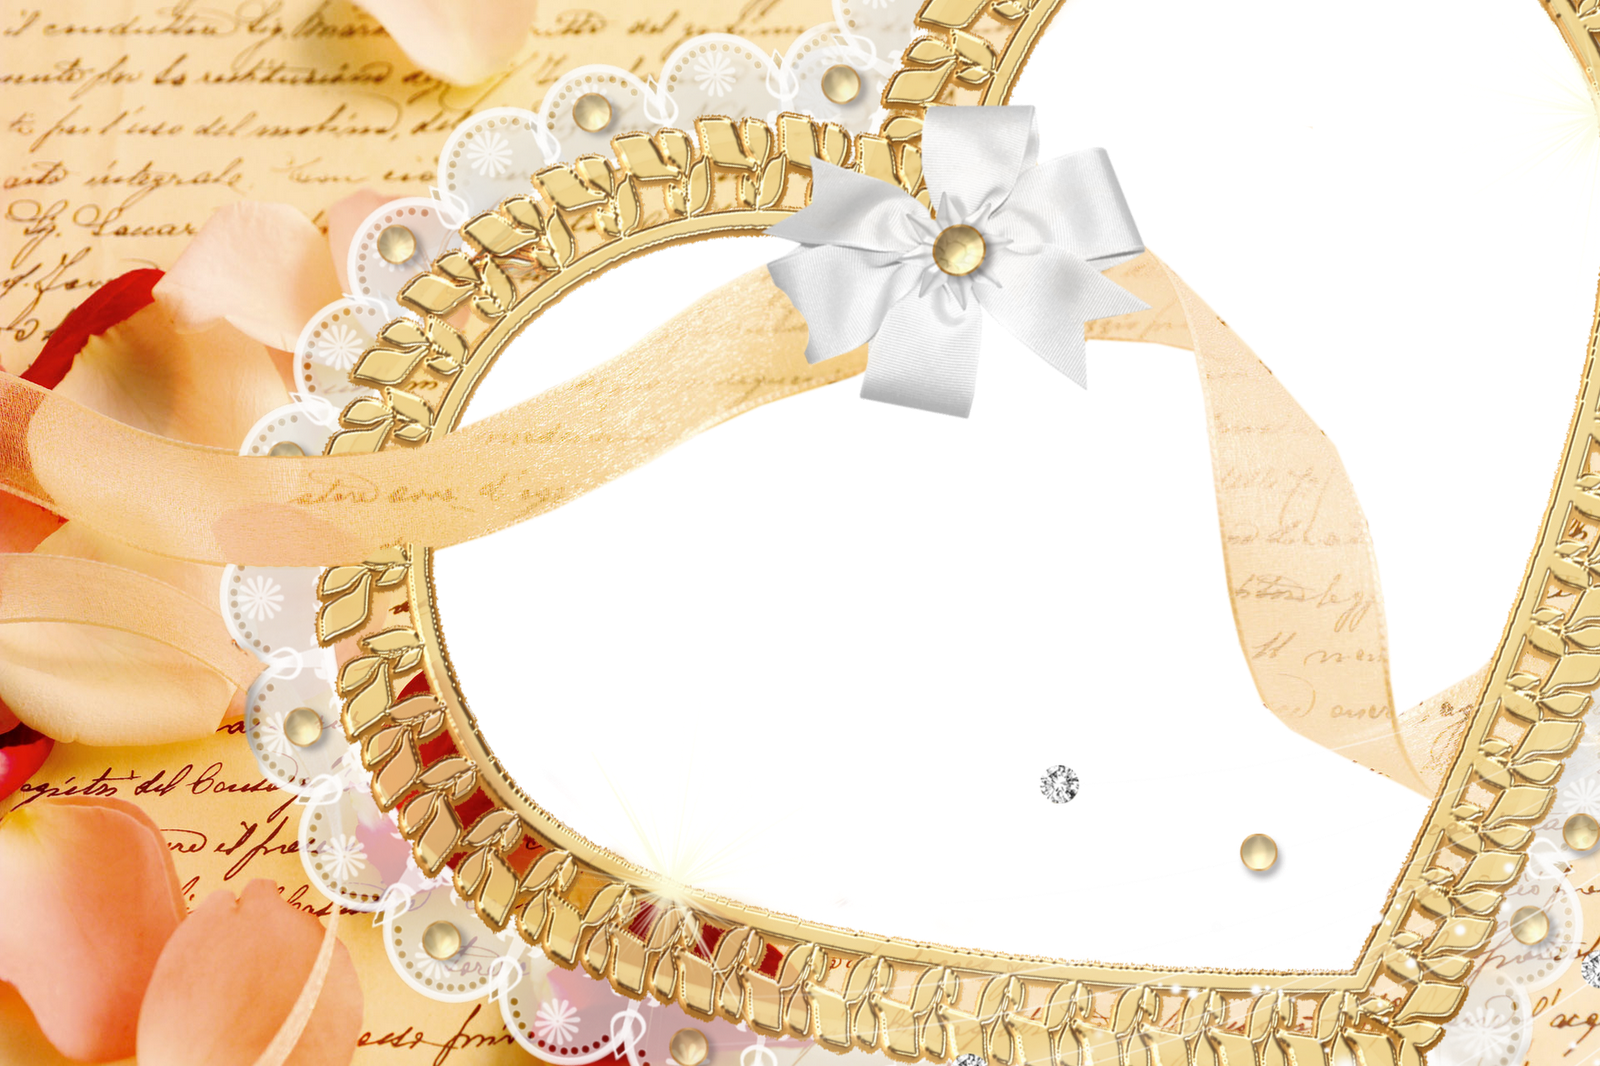 Wedding Photoshop Background Png image #24721